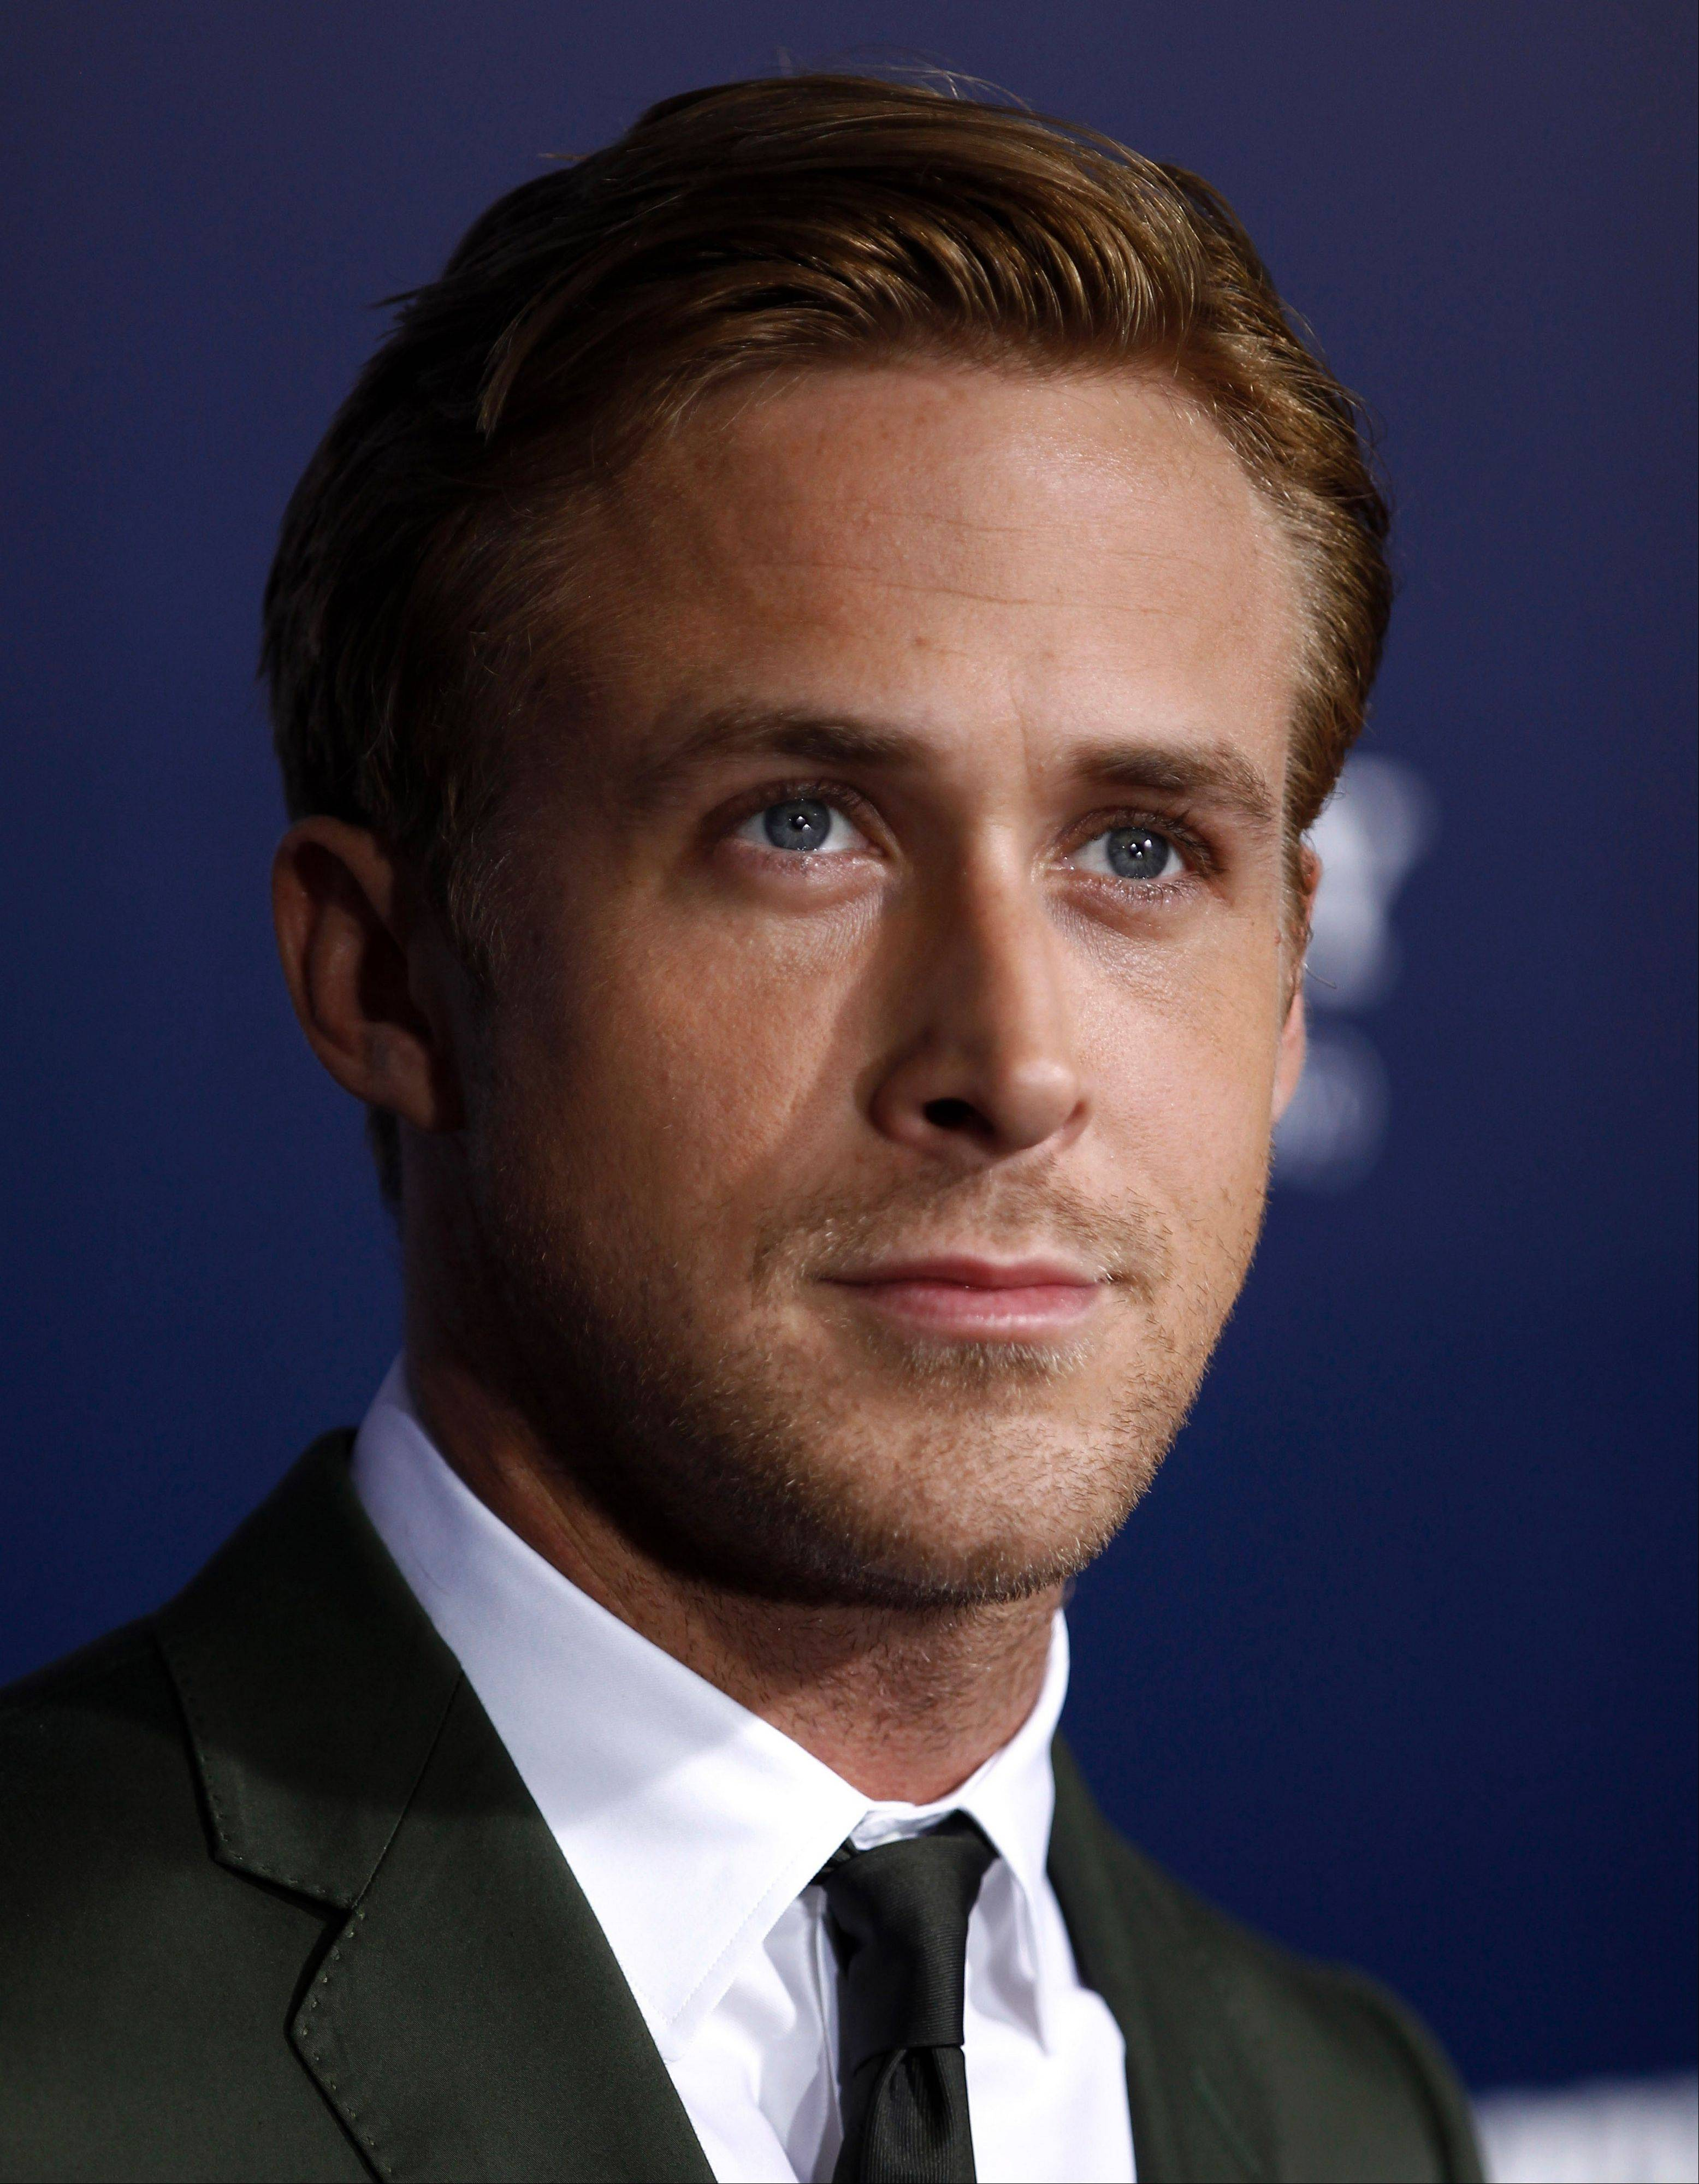 "Actor Ryan Gosling has been heaped with praise from fans and critics alike for his film choices in the last few years, but it's his ""Hey girl"" meme and a cell phone video of him breaking up a fight on a New York City street that has upped his star power."